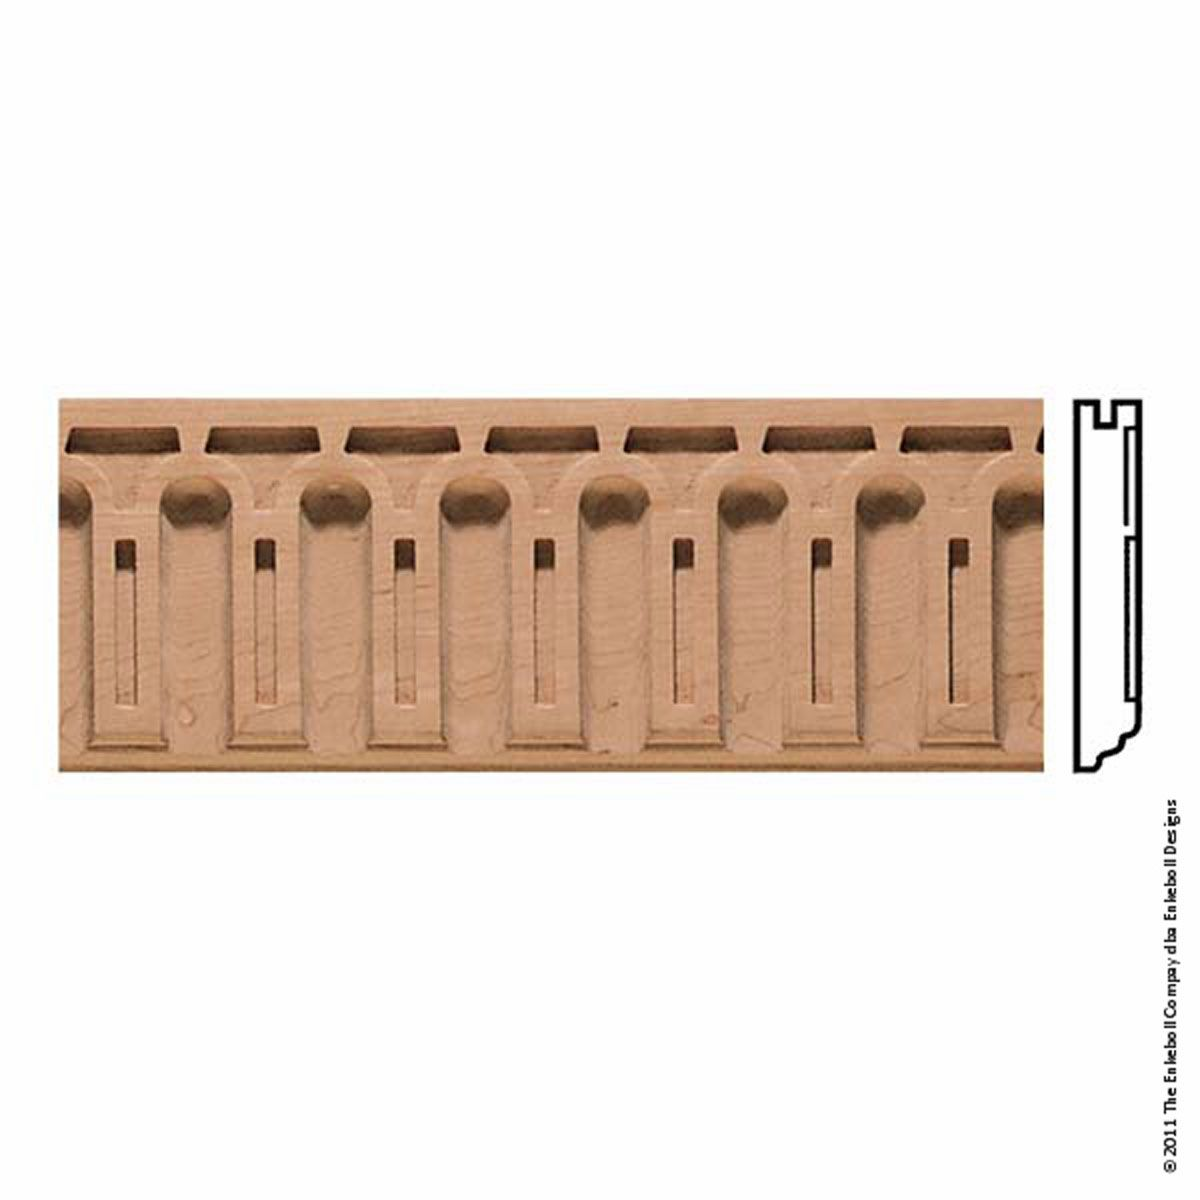 5 3 8 Inch W X 7 8 Inch P 2 Inch Repeat Molding Roman Arch 8 Apos Length In 2020 Wood Crown Molding Crown Molding Styles Moulding Profiles